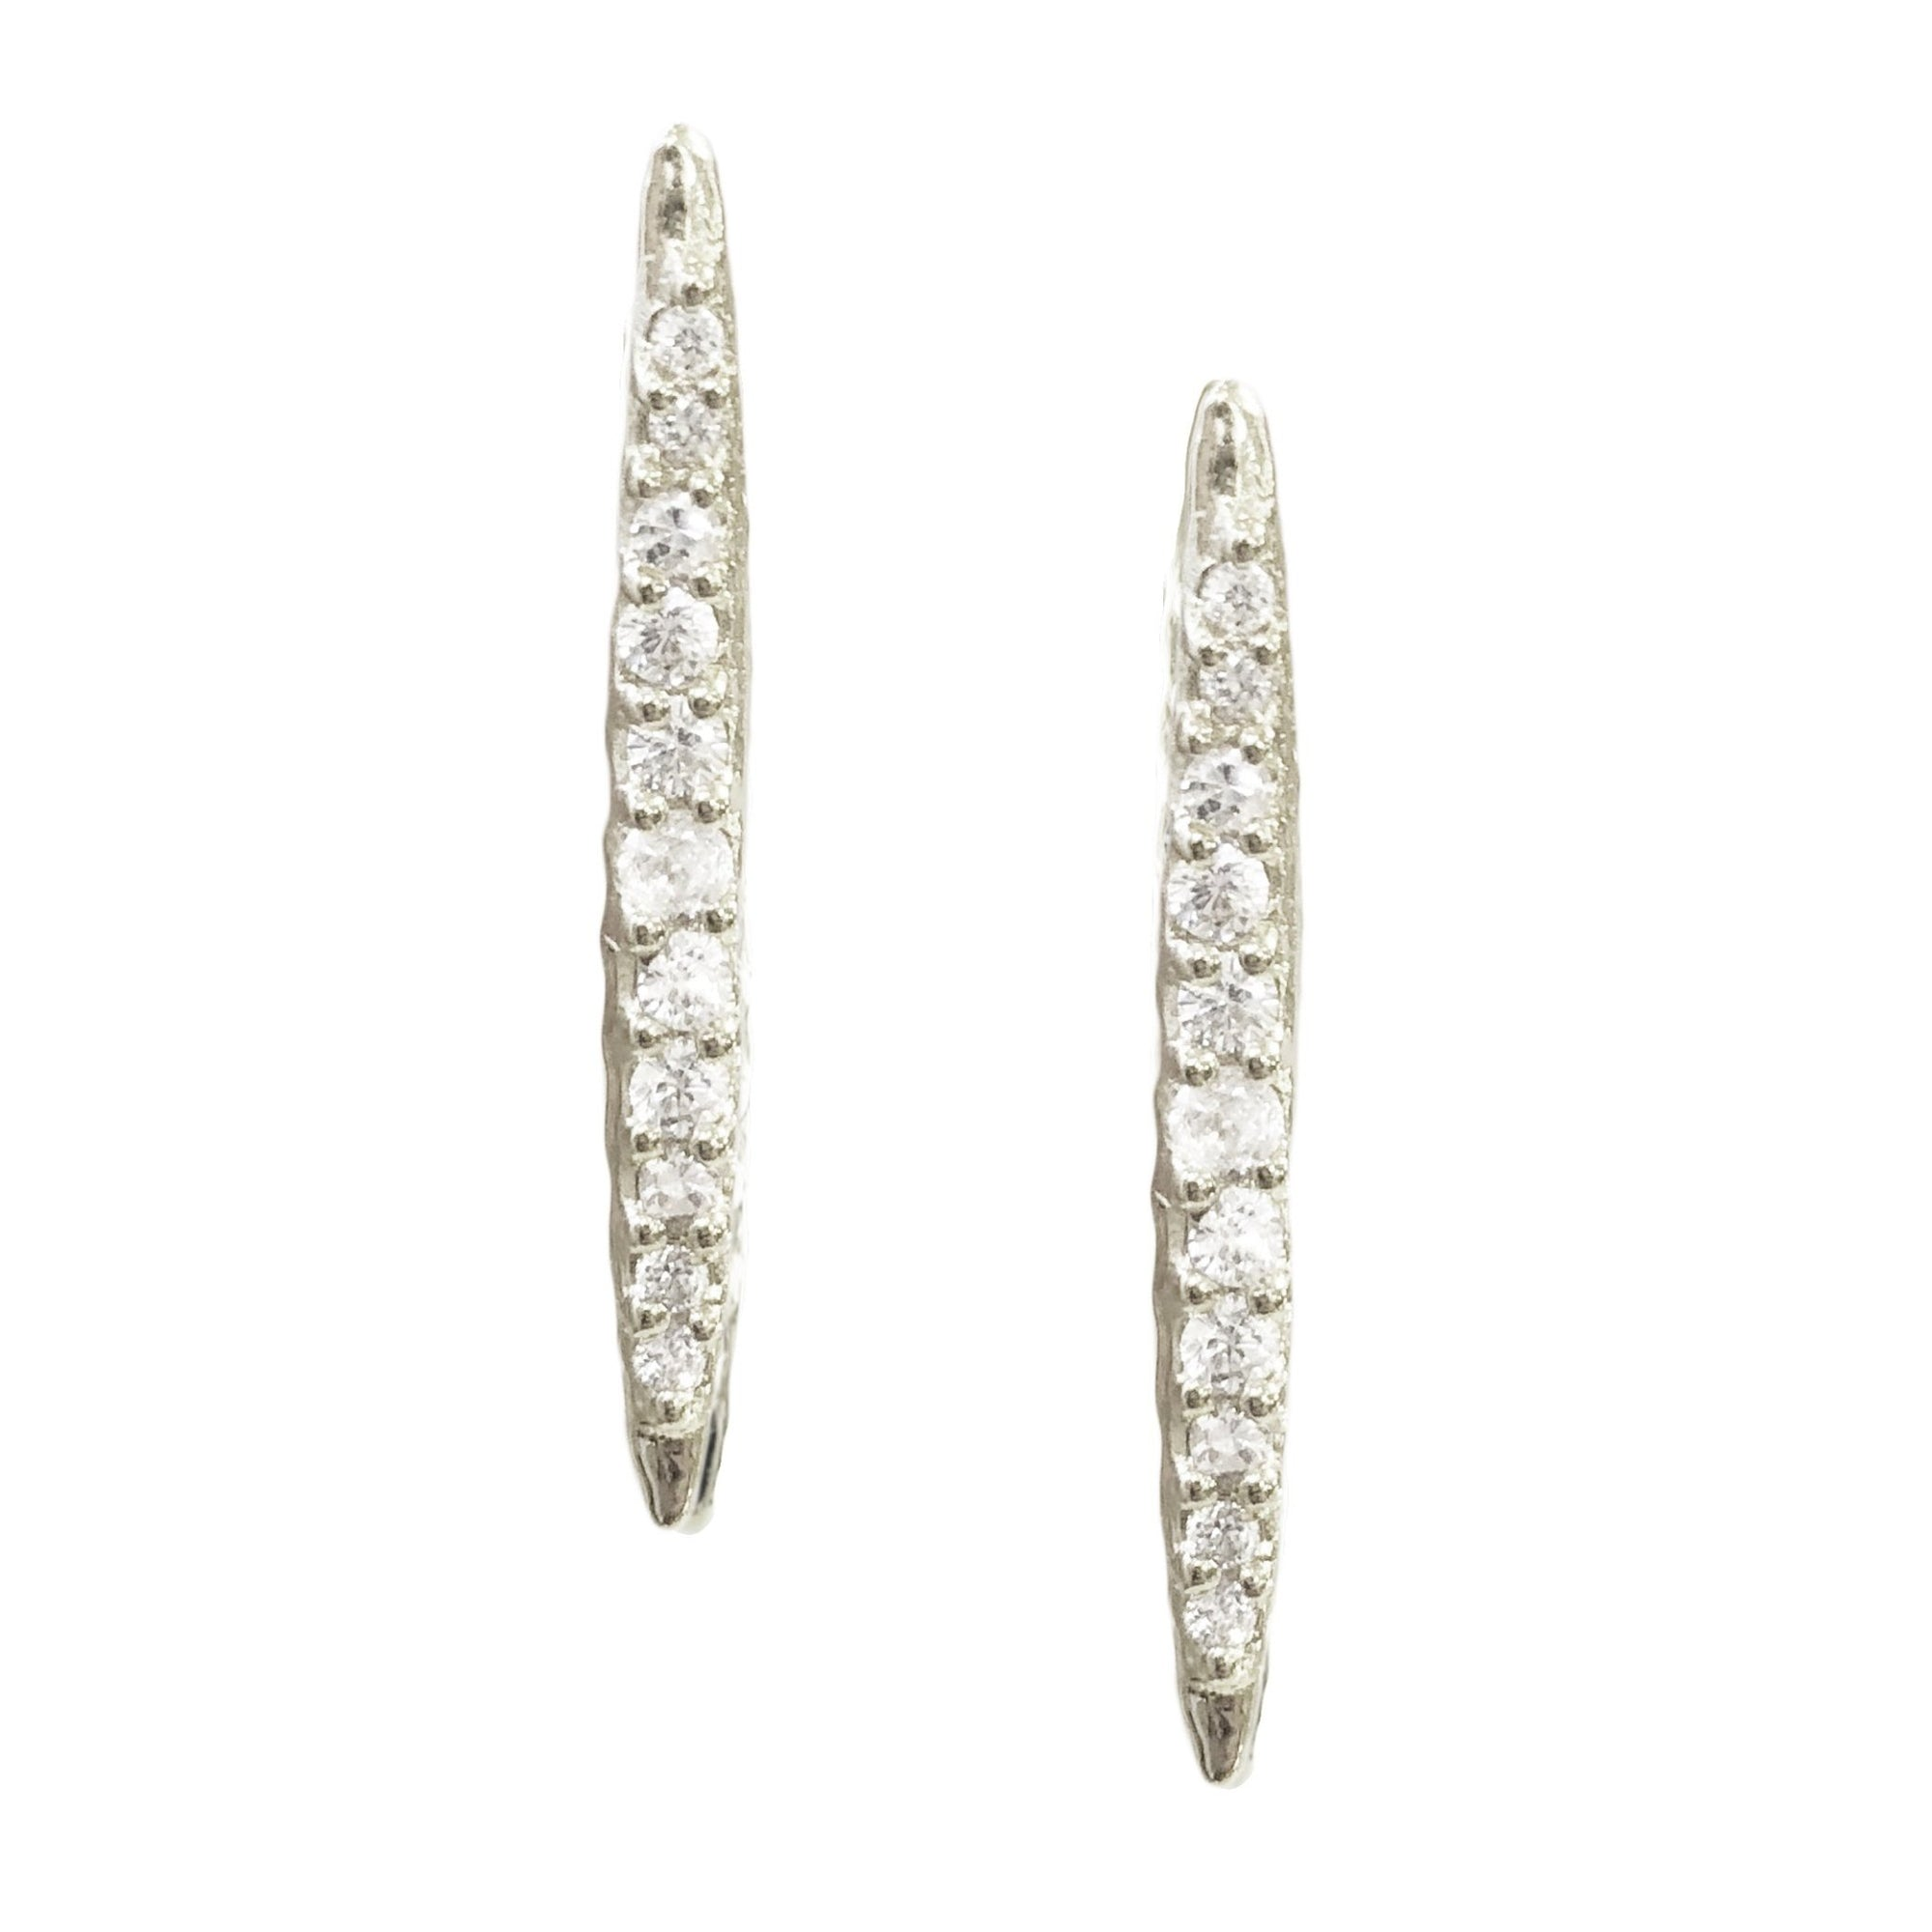 DREAM STARDUST STUDS - CUBIC ZIRCONIA & SILVER - SO PRETTY CARA COTTER